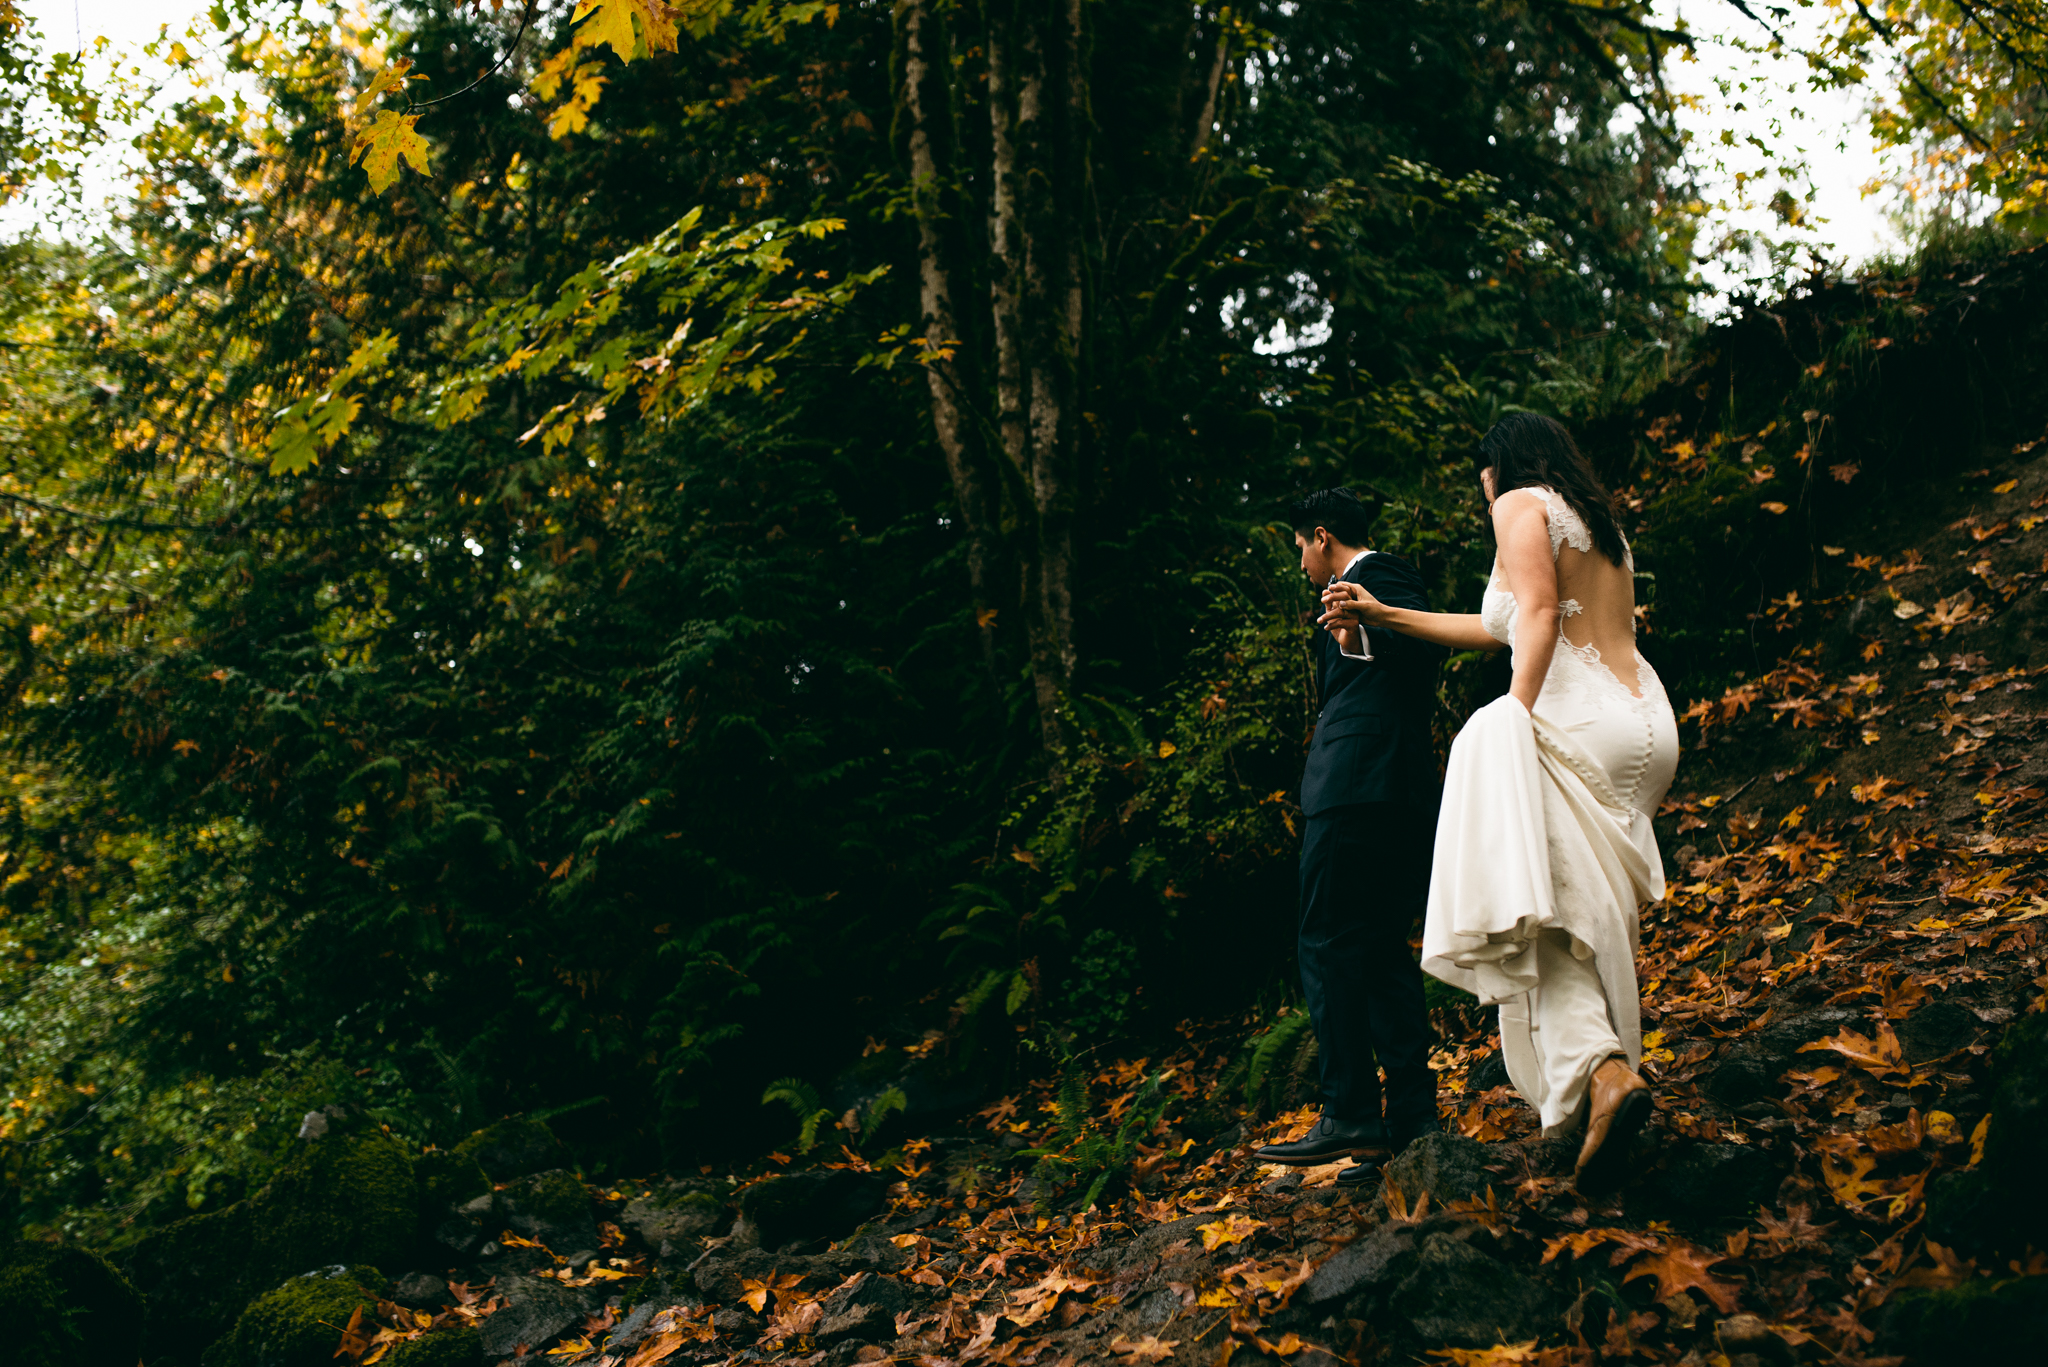 ©Isaiah & Taylor Photography - Los Angeles Wedding - Snoqualmie, Washington Honeymoon-020.jpg